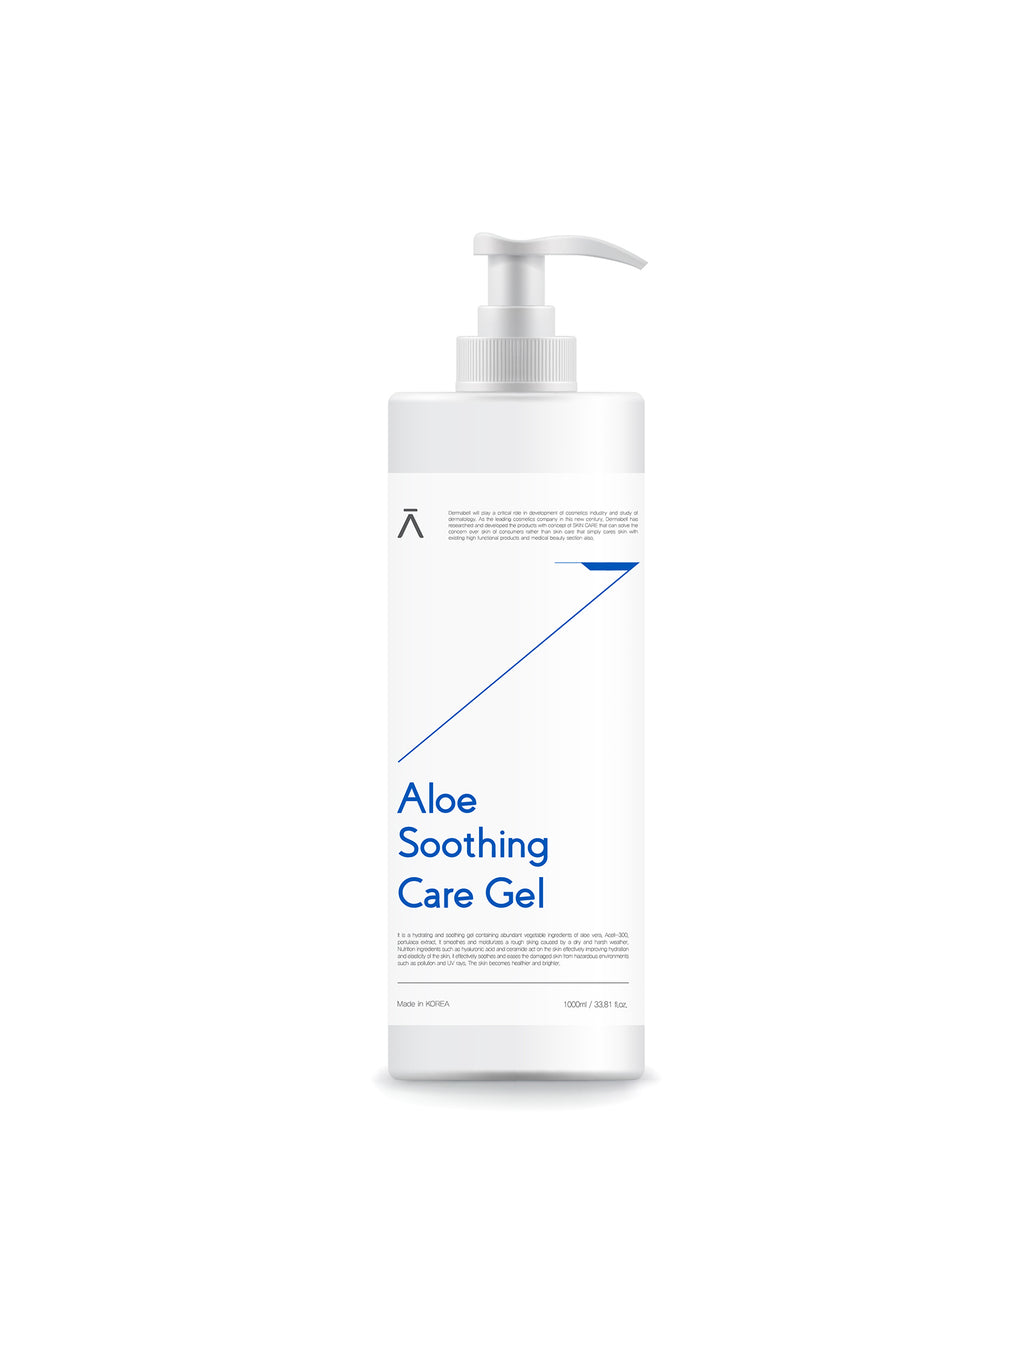 Aloe Soothing Care Gel (Aloe Perfect Cure Gel) Aloe Vera Gel by DERMABELL PRO